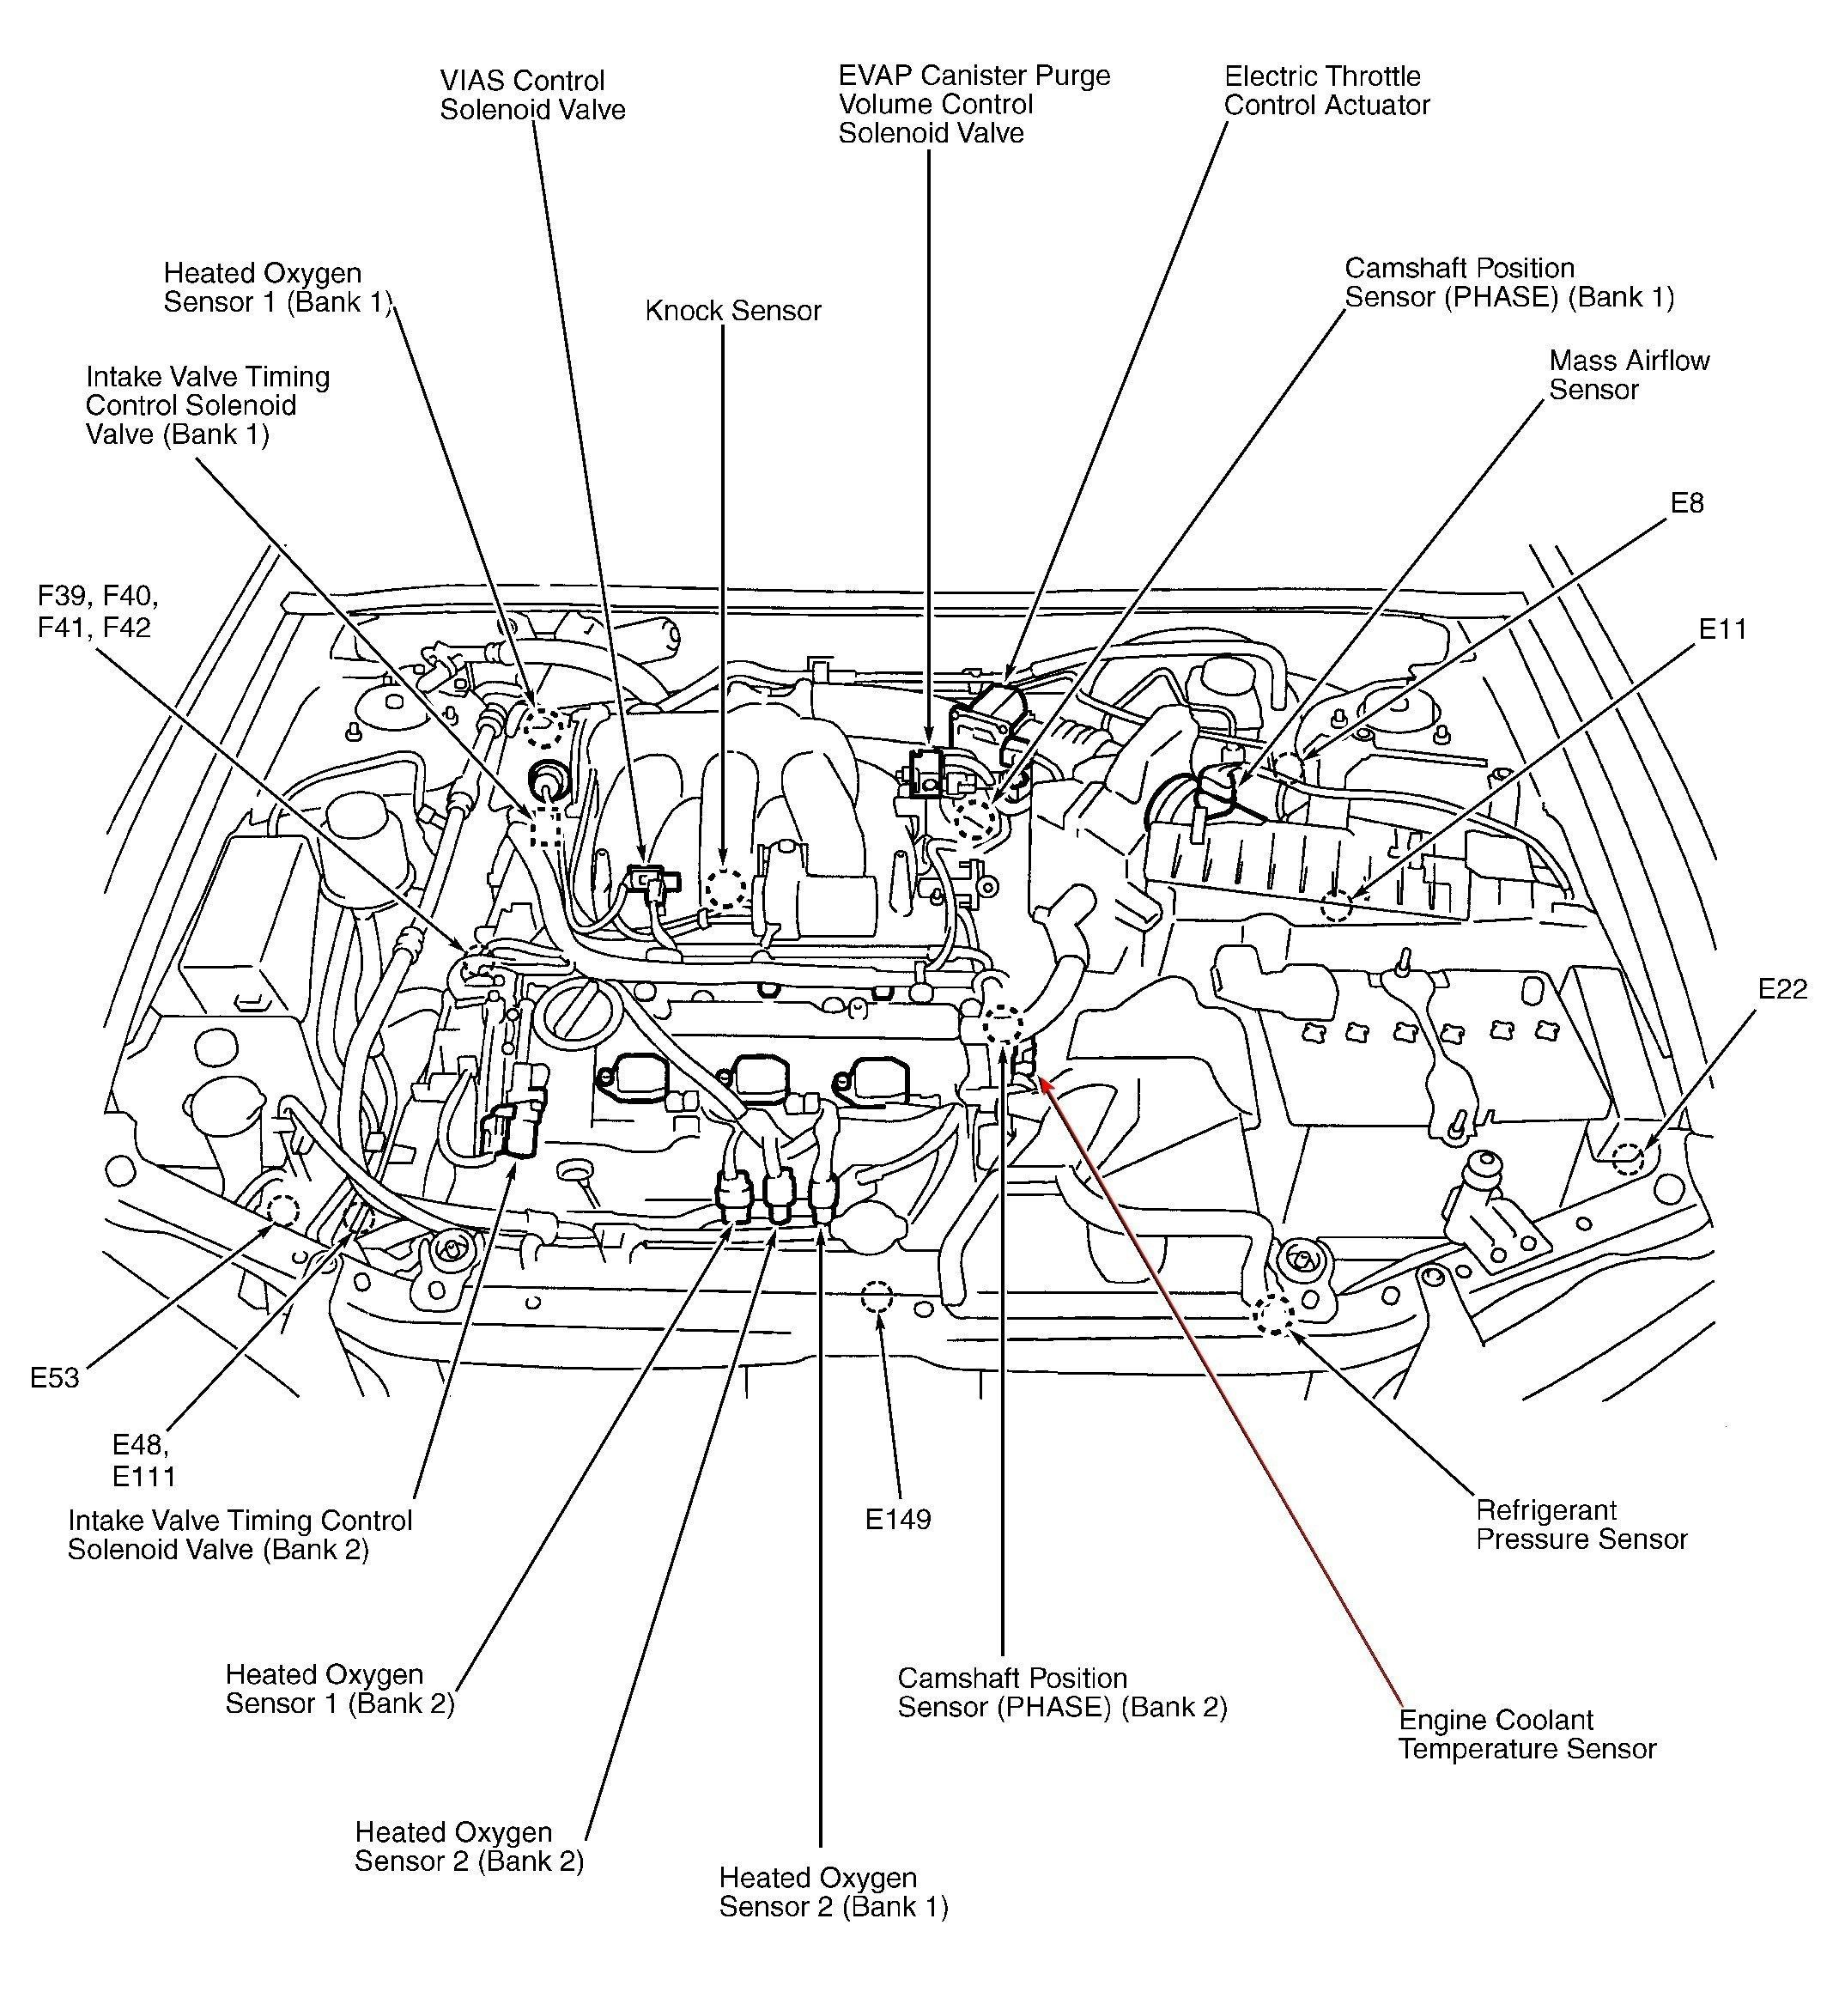 1997 Nissan Pathfinder Engine Diagram Wiring Diagram Query 1997 Nissan Altima Exhaust System Diagram 1997 Nissan Pathfinder Part In 2020 Diagram Nissan Frontier Nissan